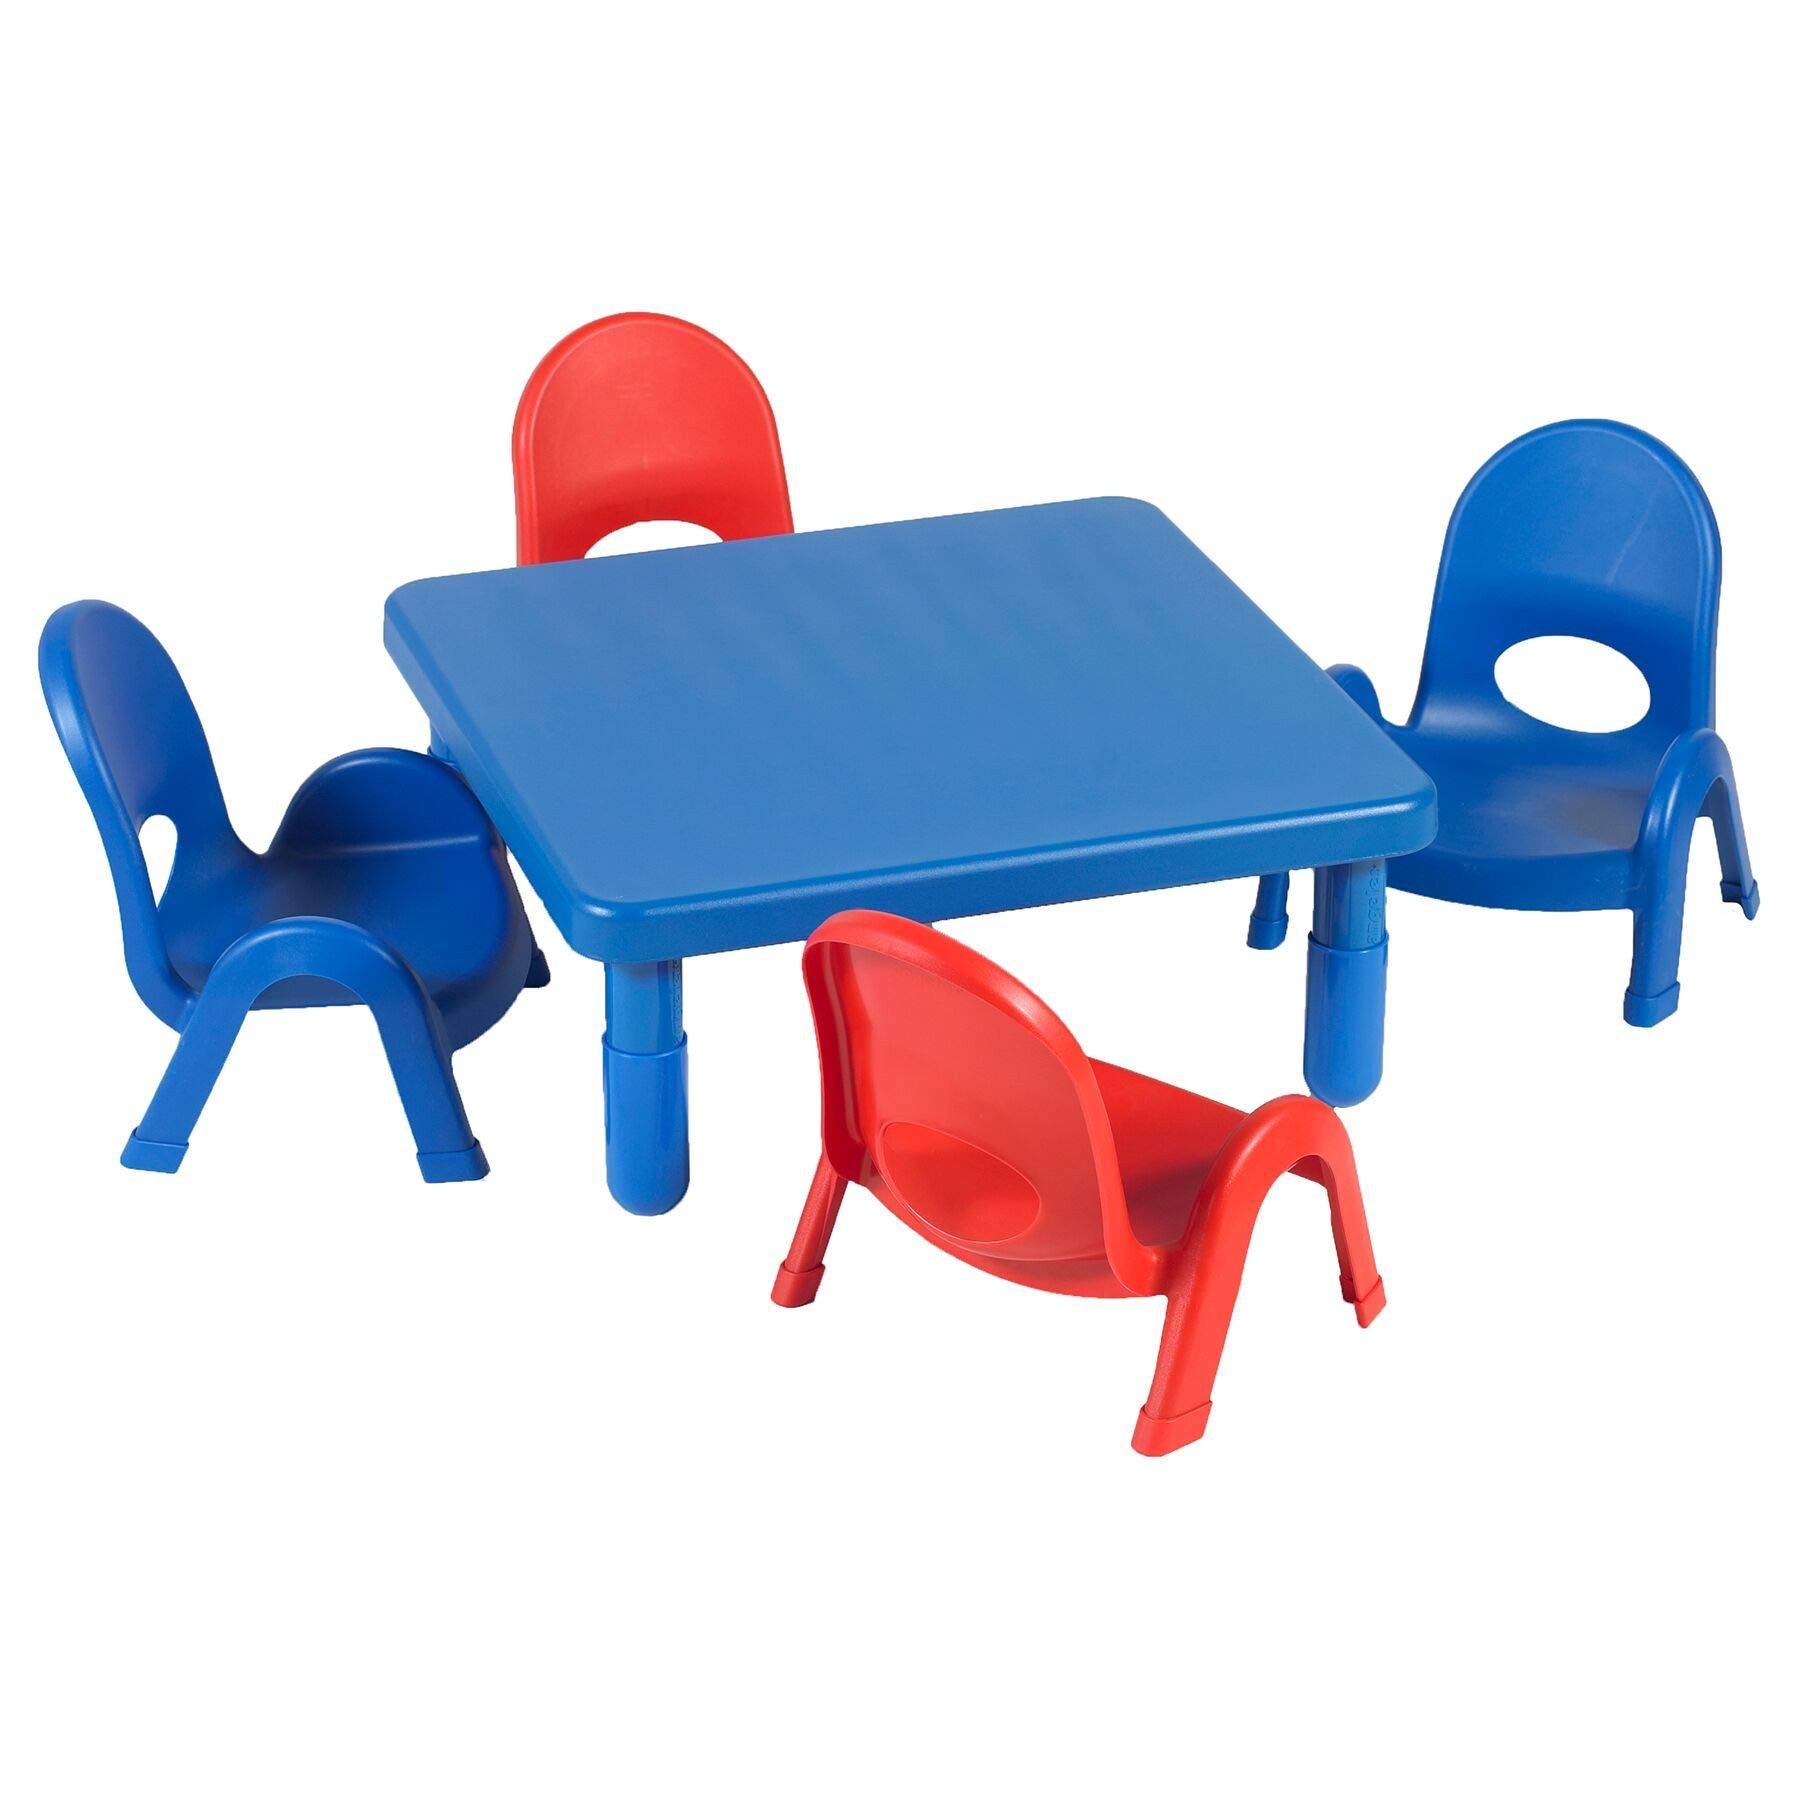 Angeles 5-Pc MyValue Square Toddler Table and Chair Set by Angeles